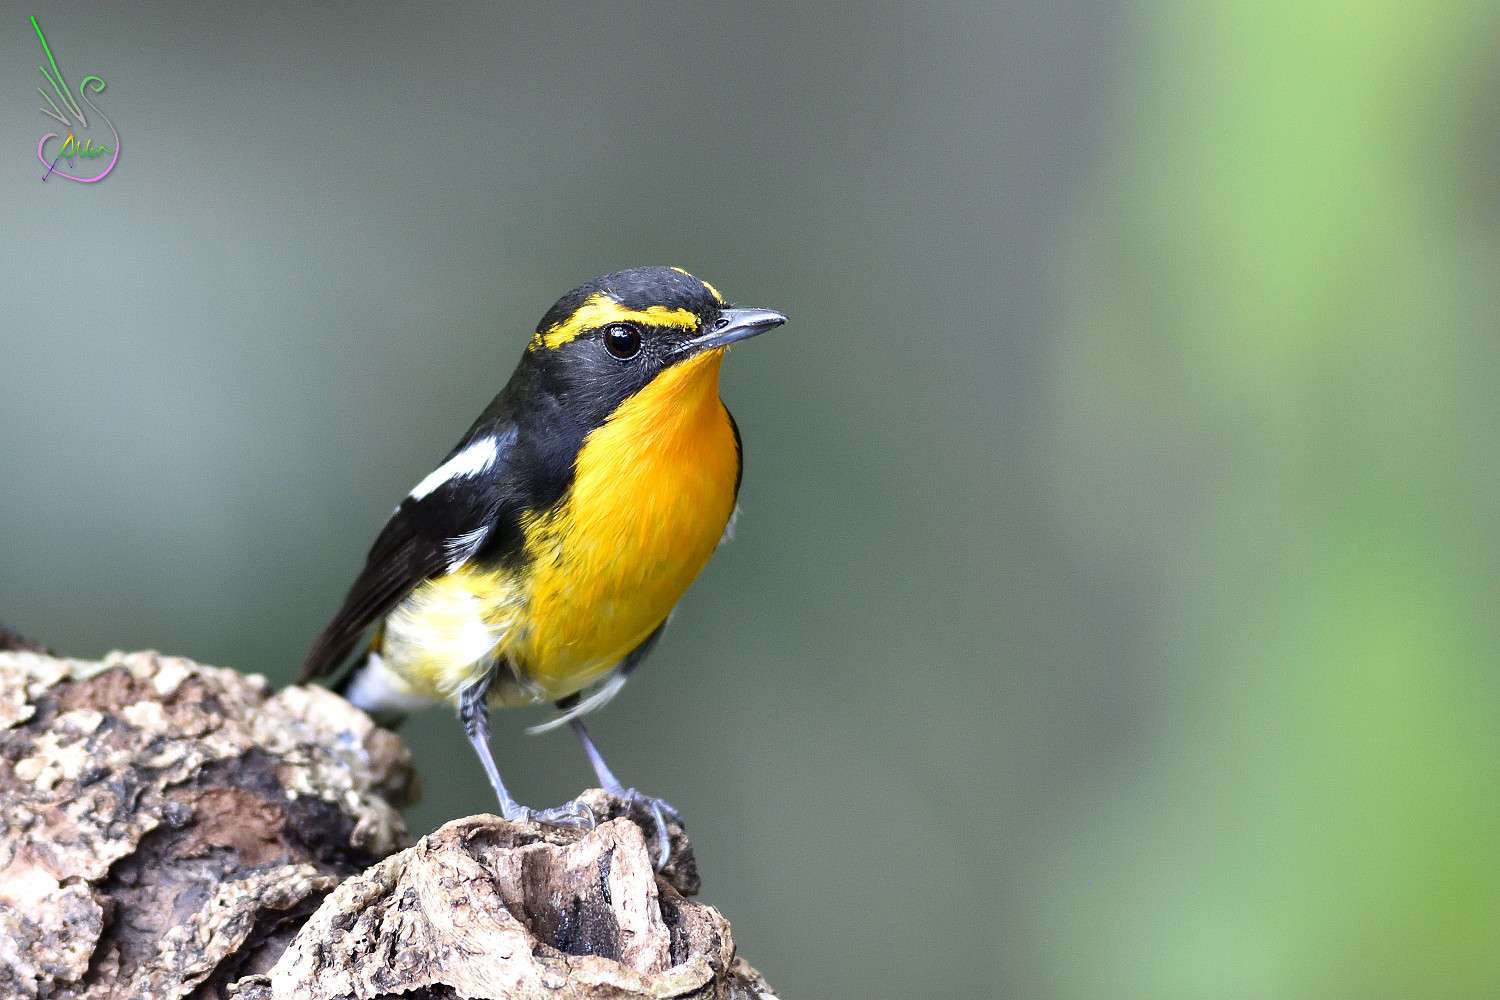 Narcissus_Flycatcher_8532